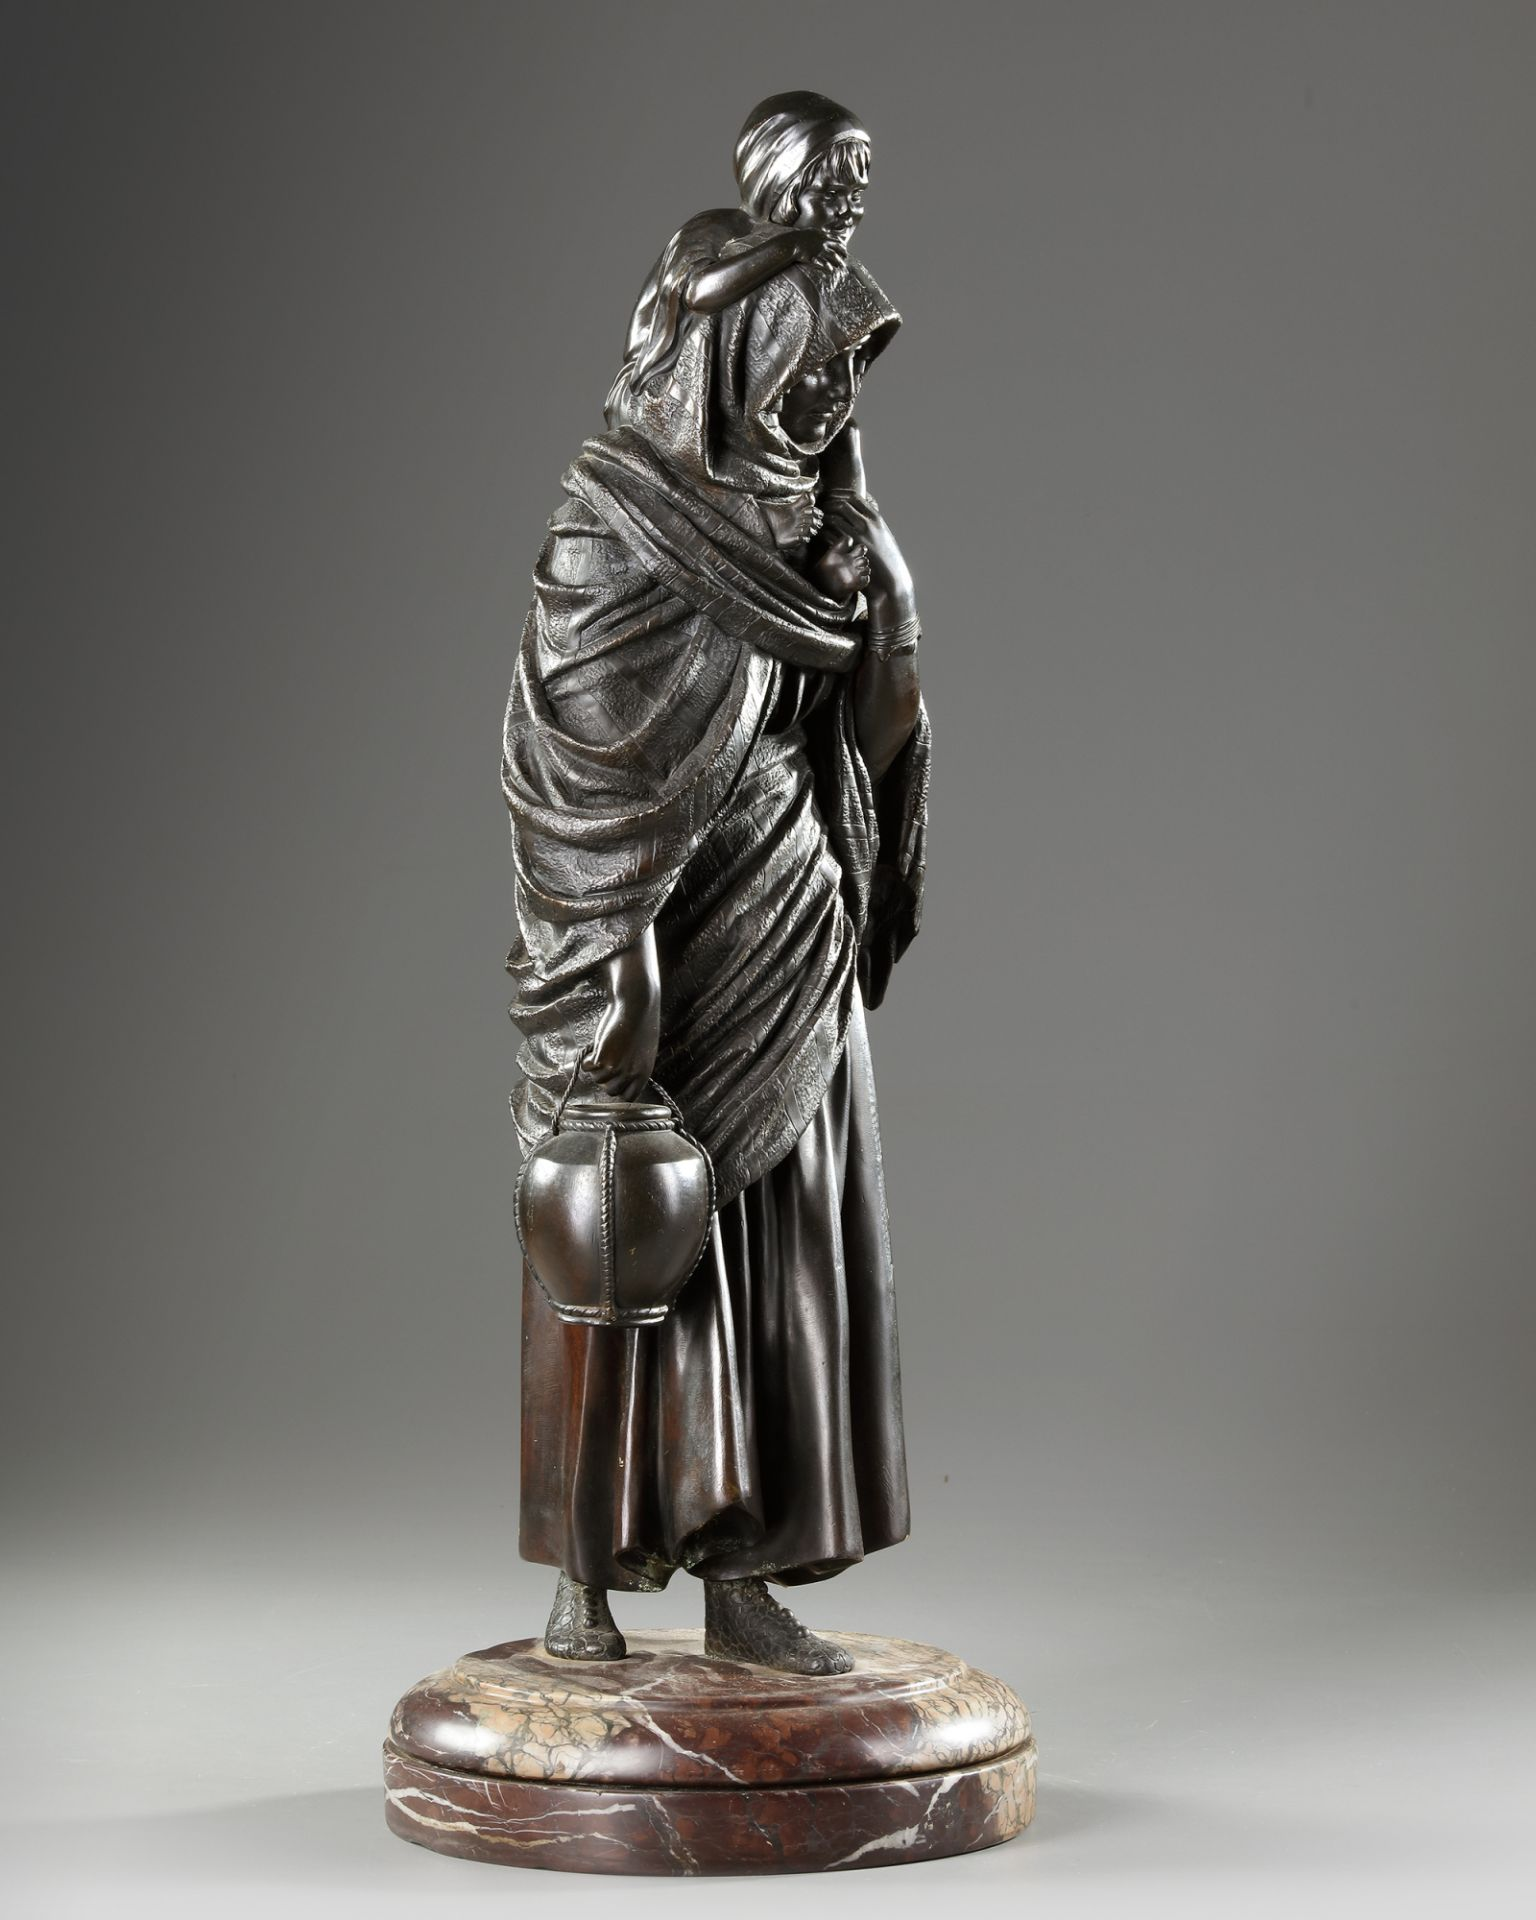 A BRONZE STATUE OF A LADY, DEMETRE CHIPARUS, 20TH CENTURY - Image 3 of 5